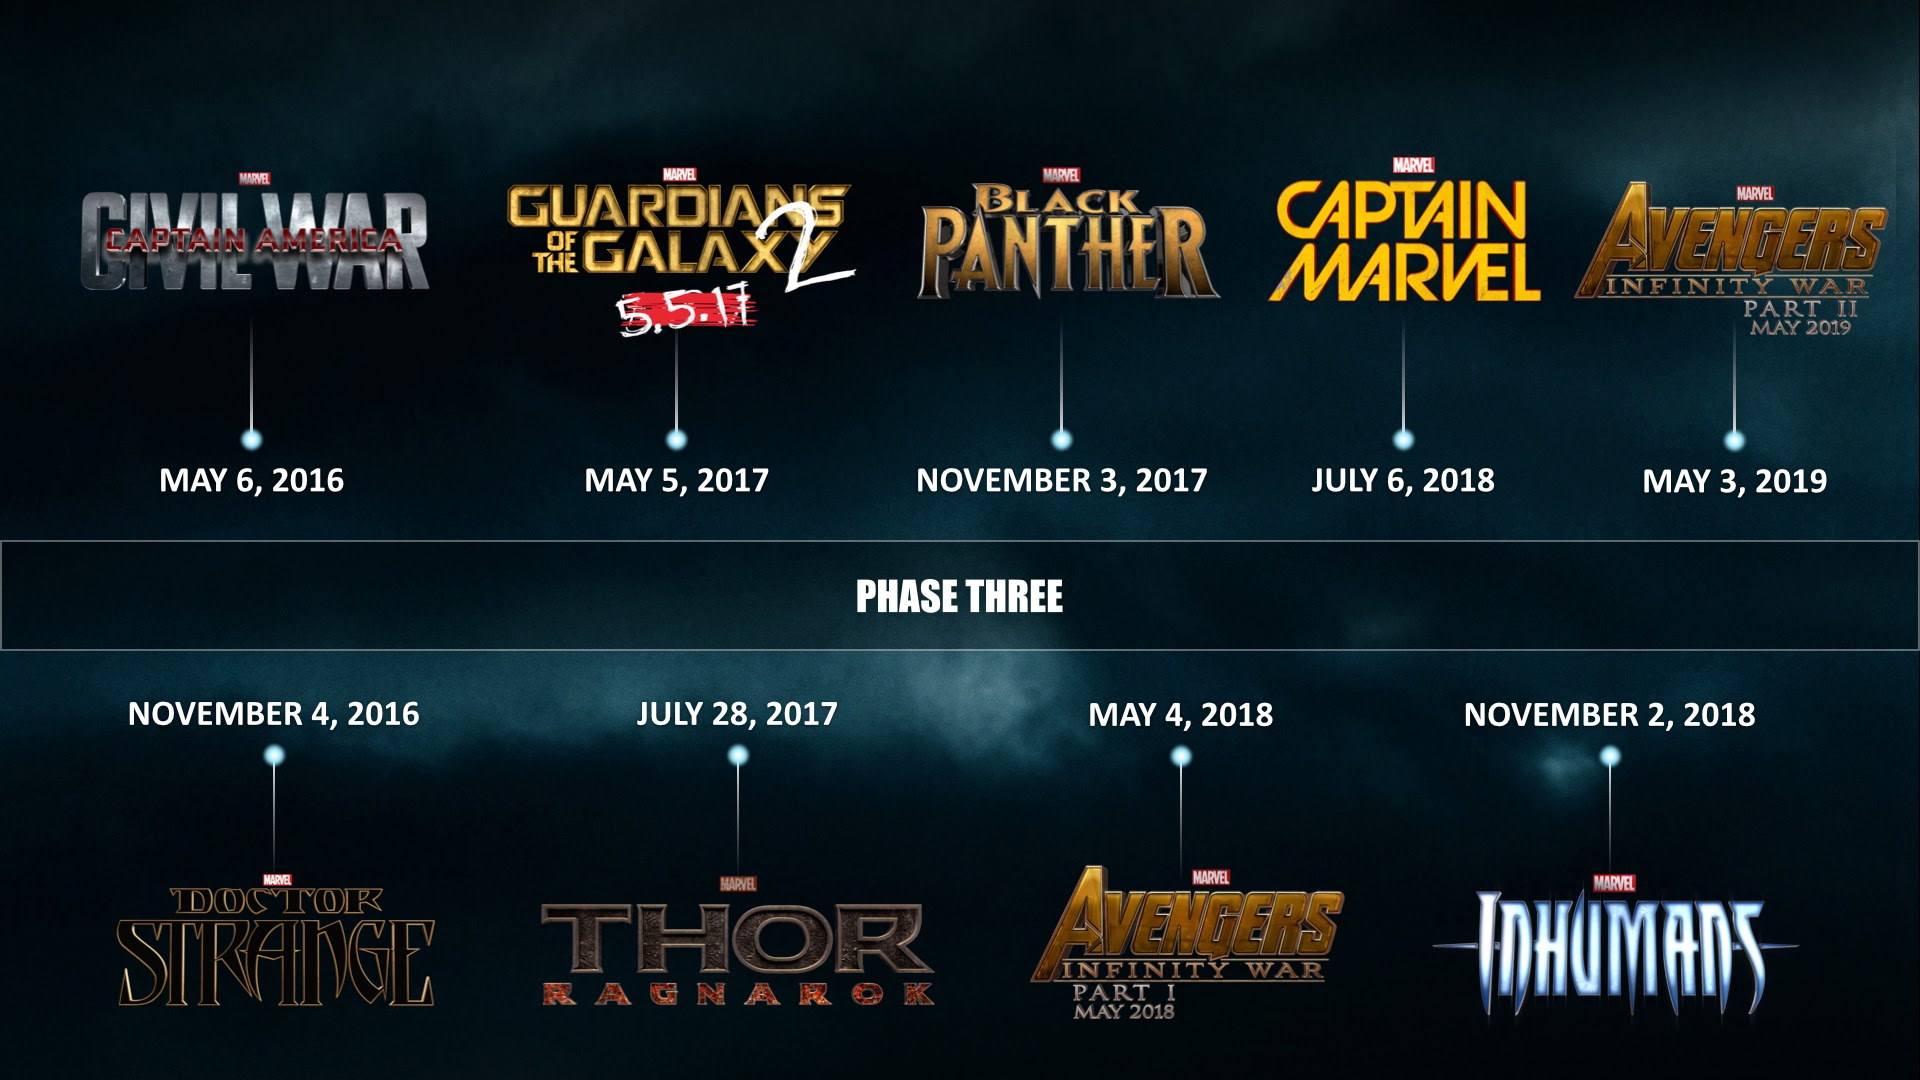 image - marvel-phase-3-timeline | marvel cinematic universe wiki